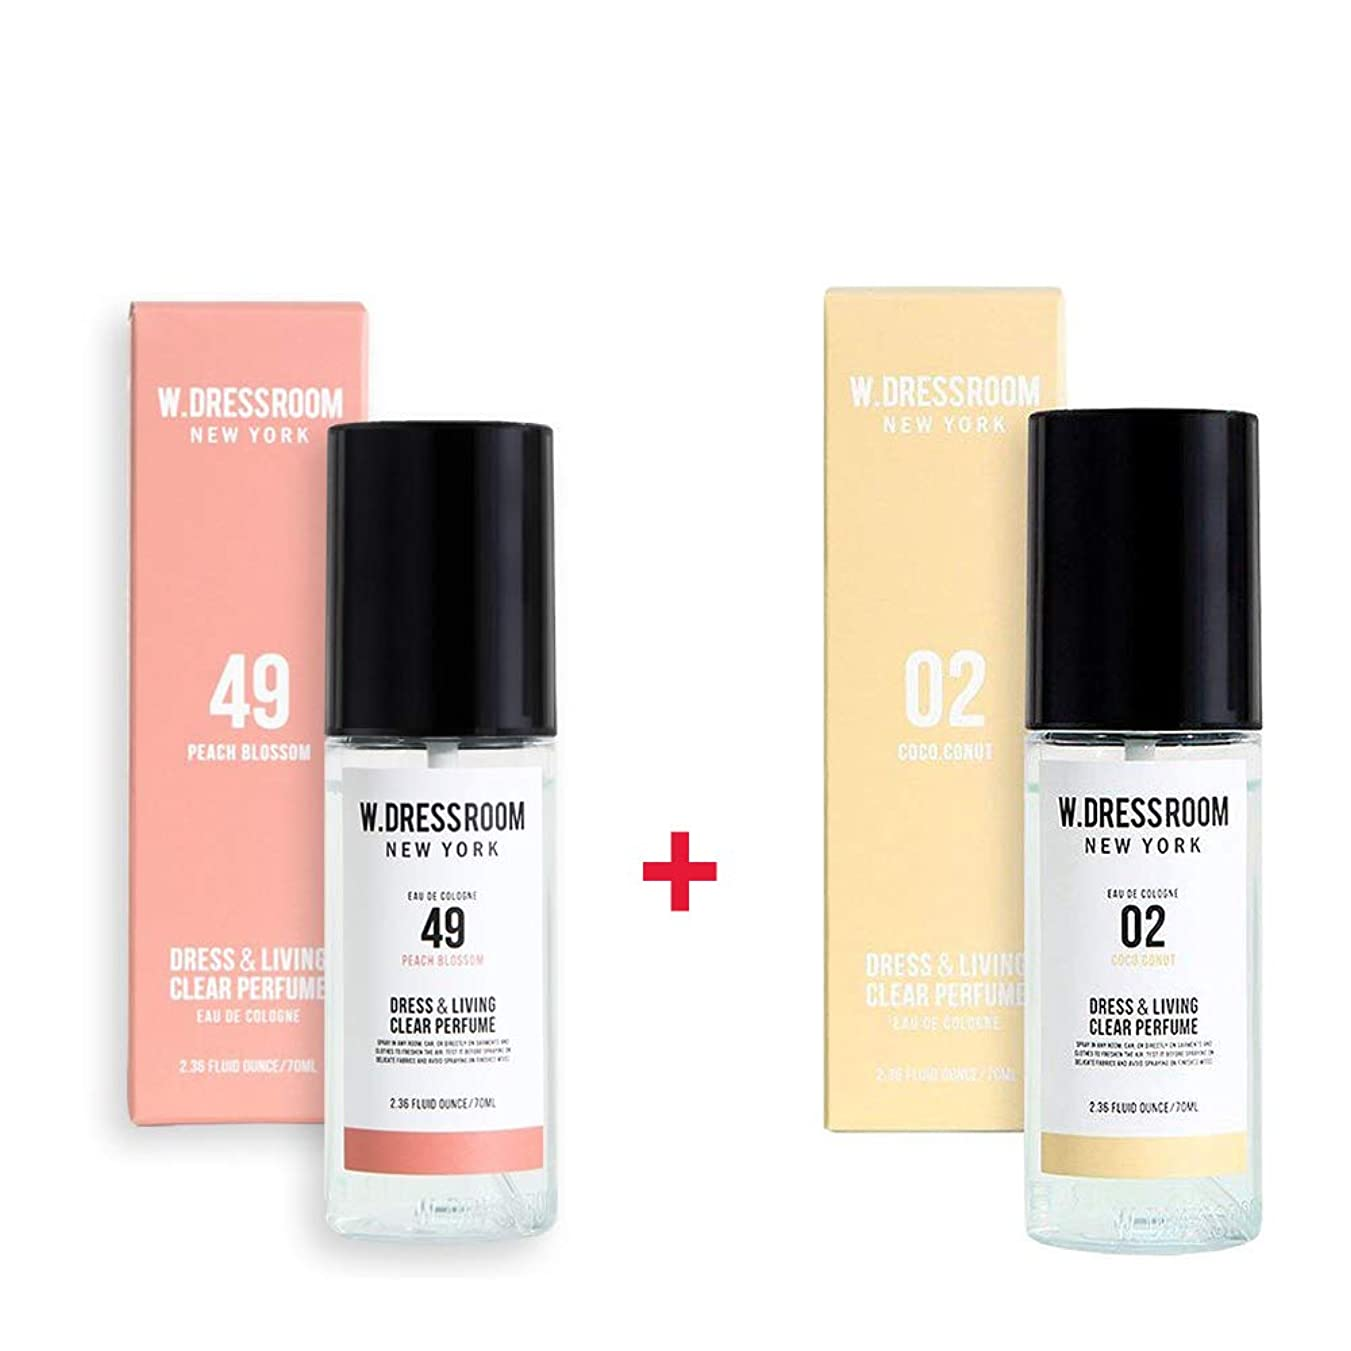 はがき王女学士W.DRESSROOM Dress & Living Clear Perfume 70ml (No 49 Peach Blossom)+(No .02 Coco Conut)